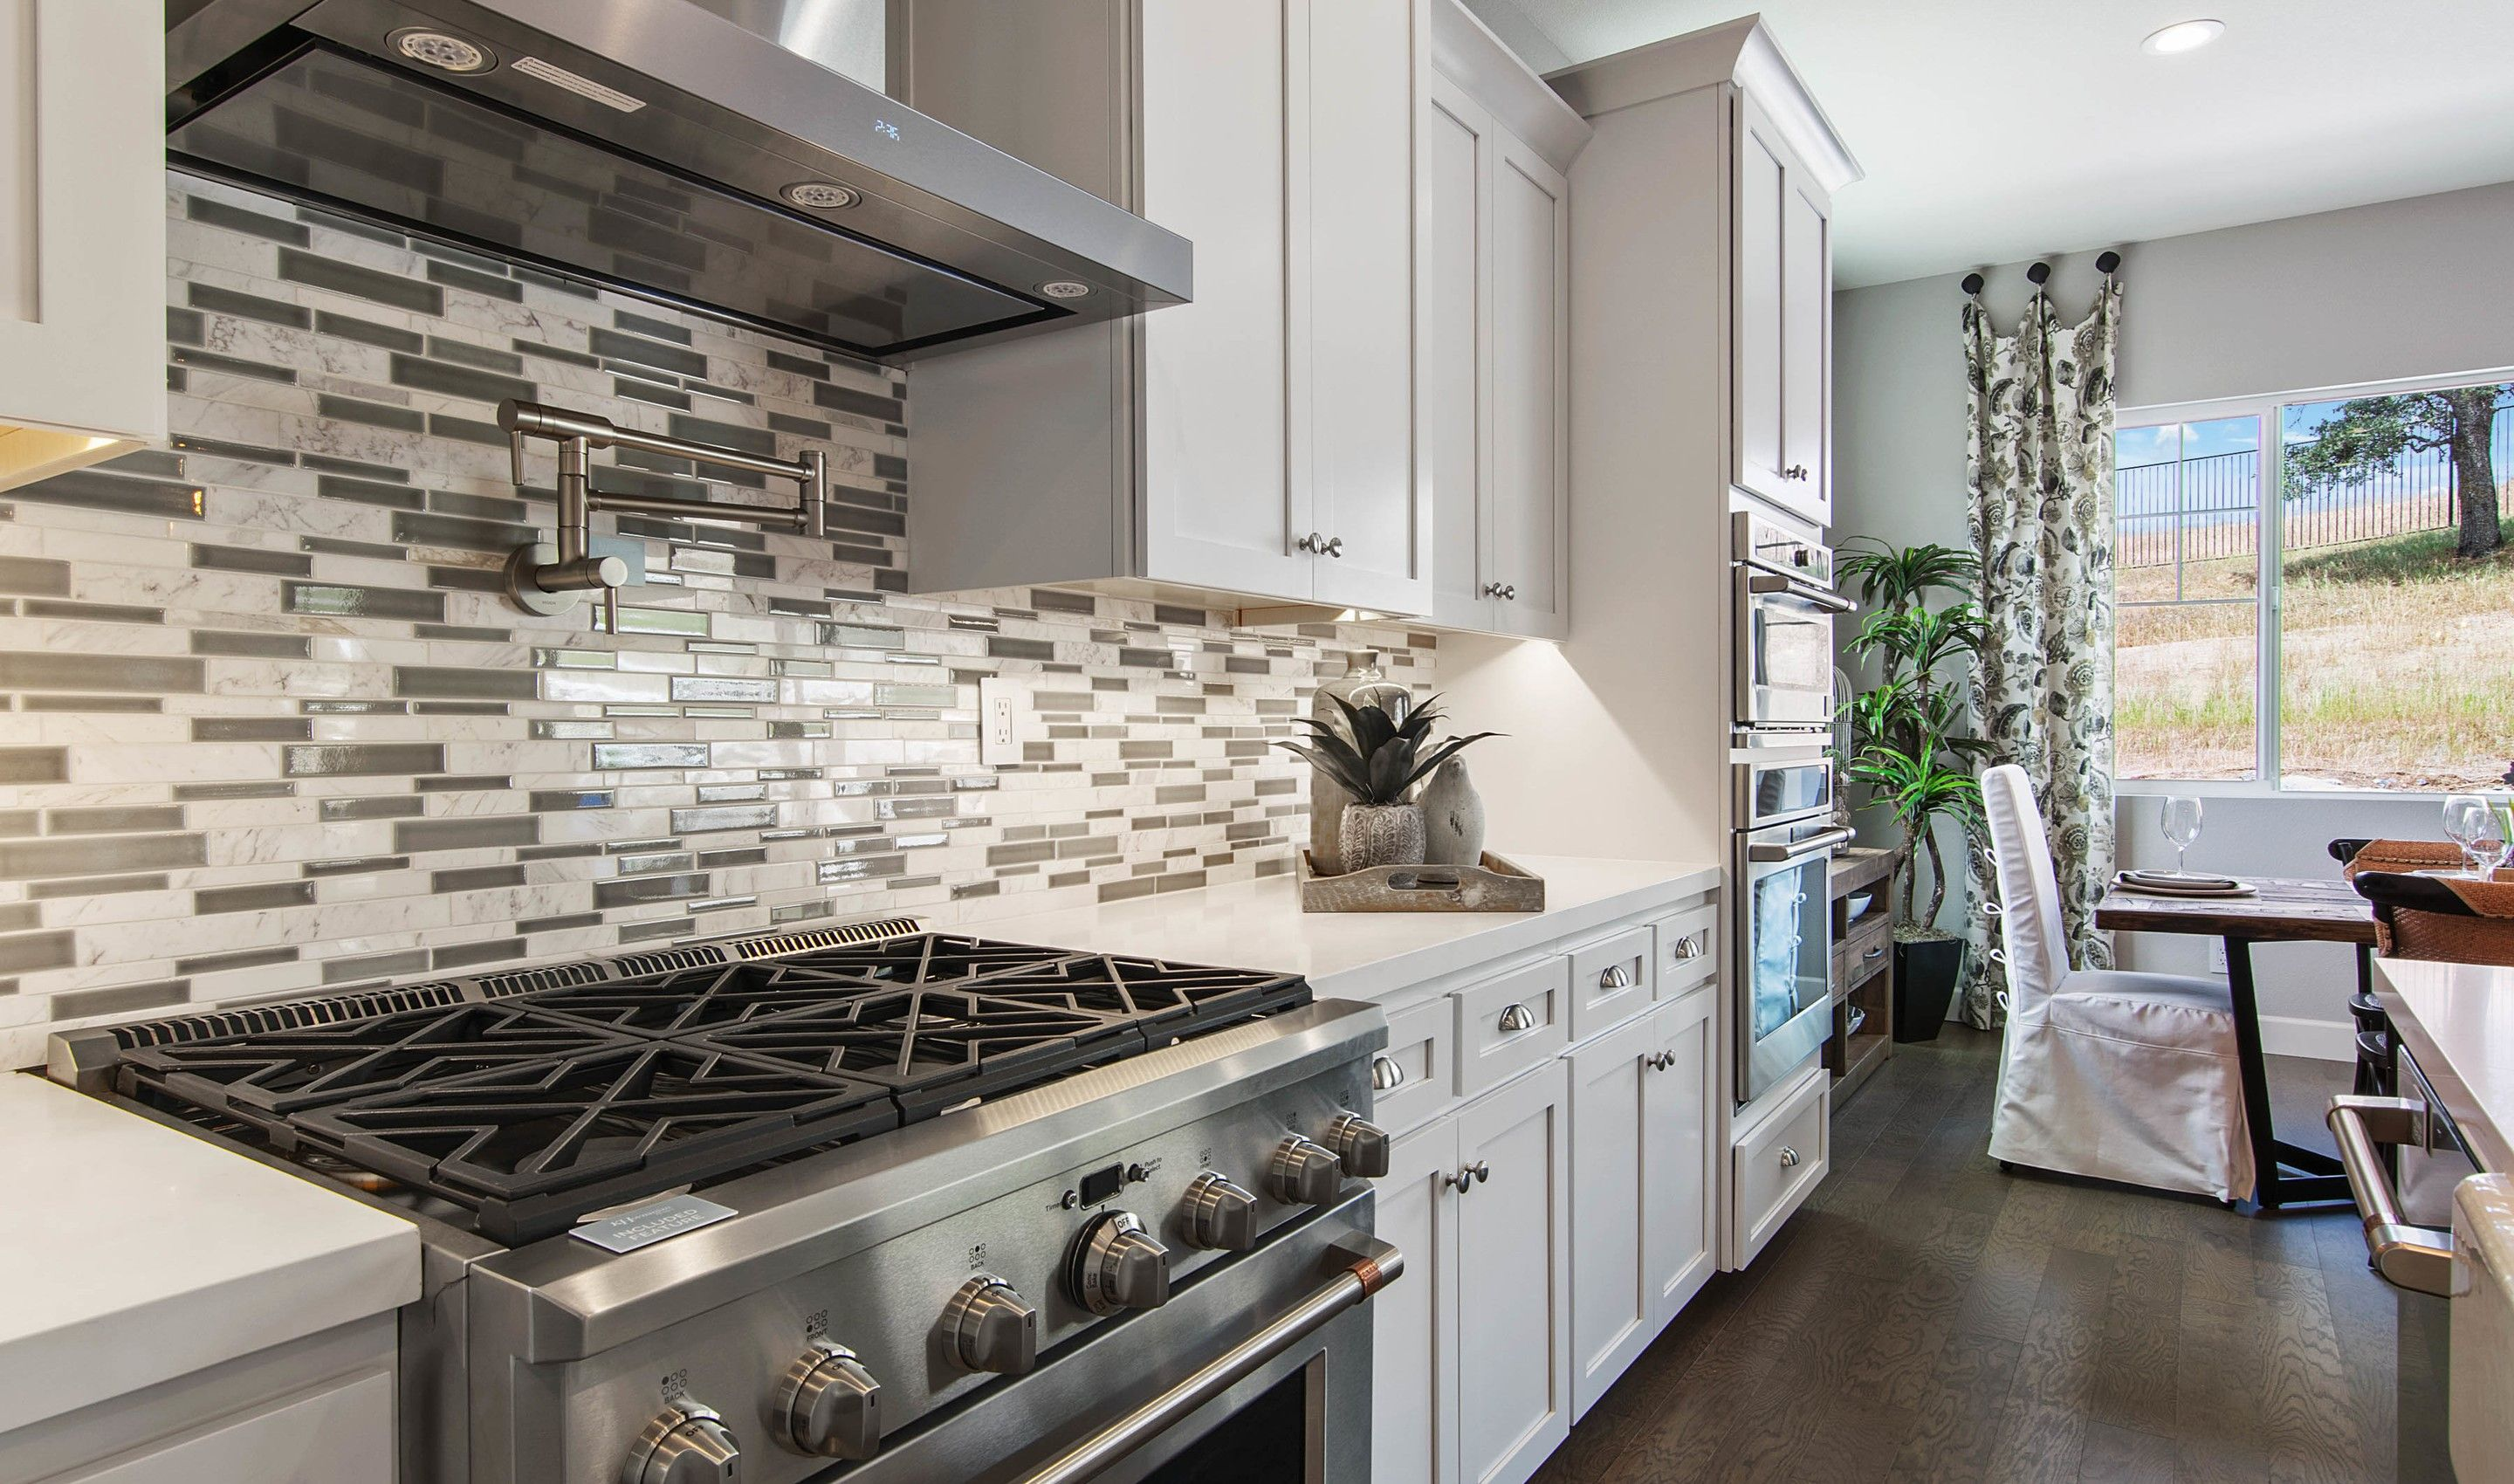 Kitchen featured in the Vivien By K. Hovnanian® Homes in Sacramento, CA